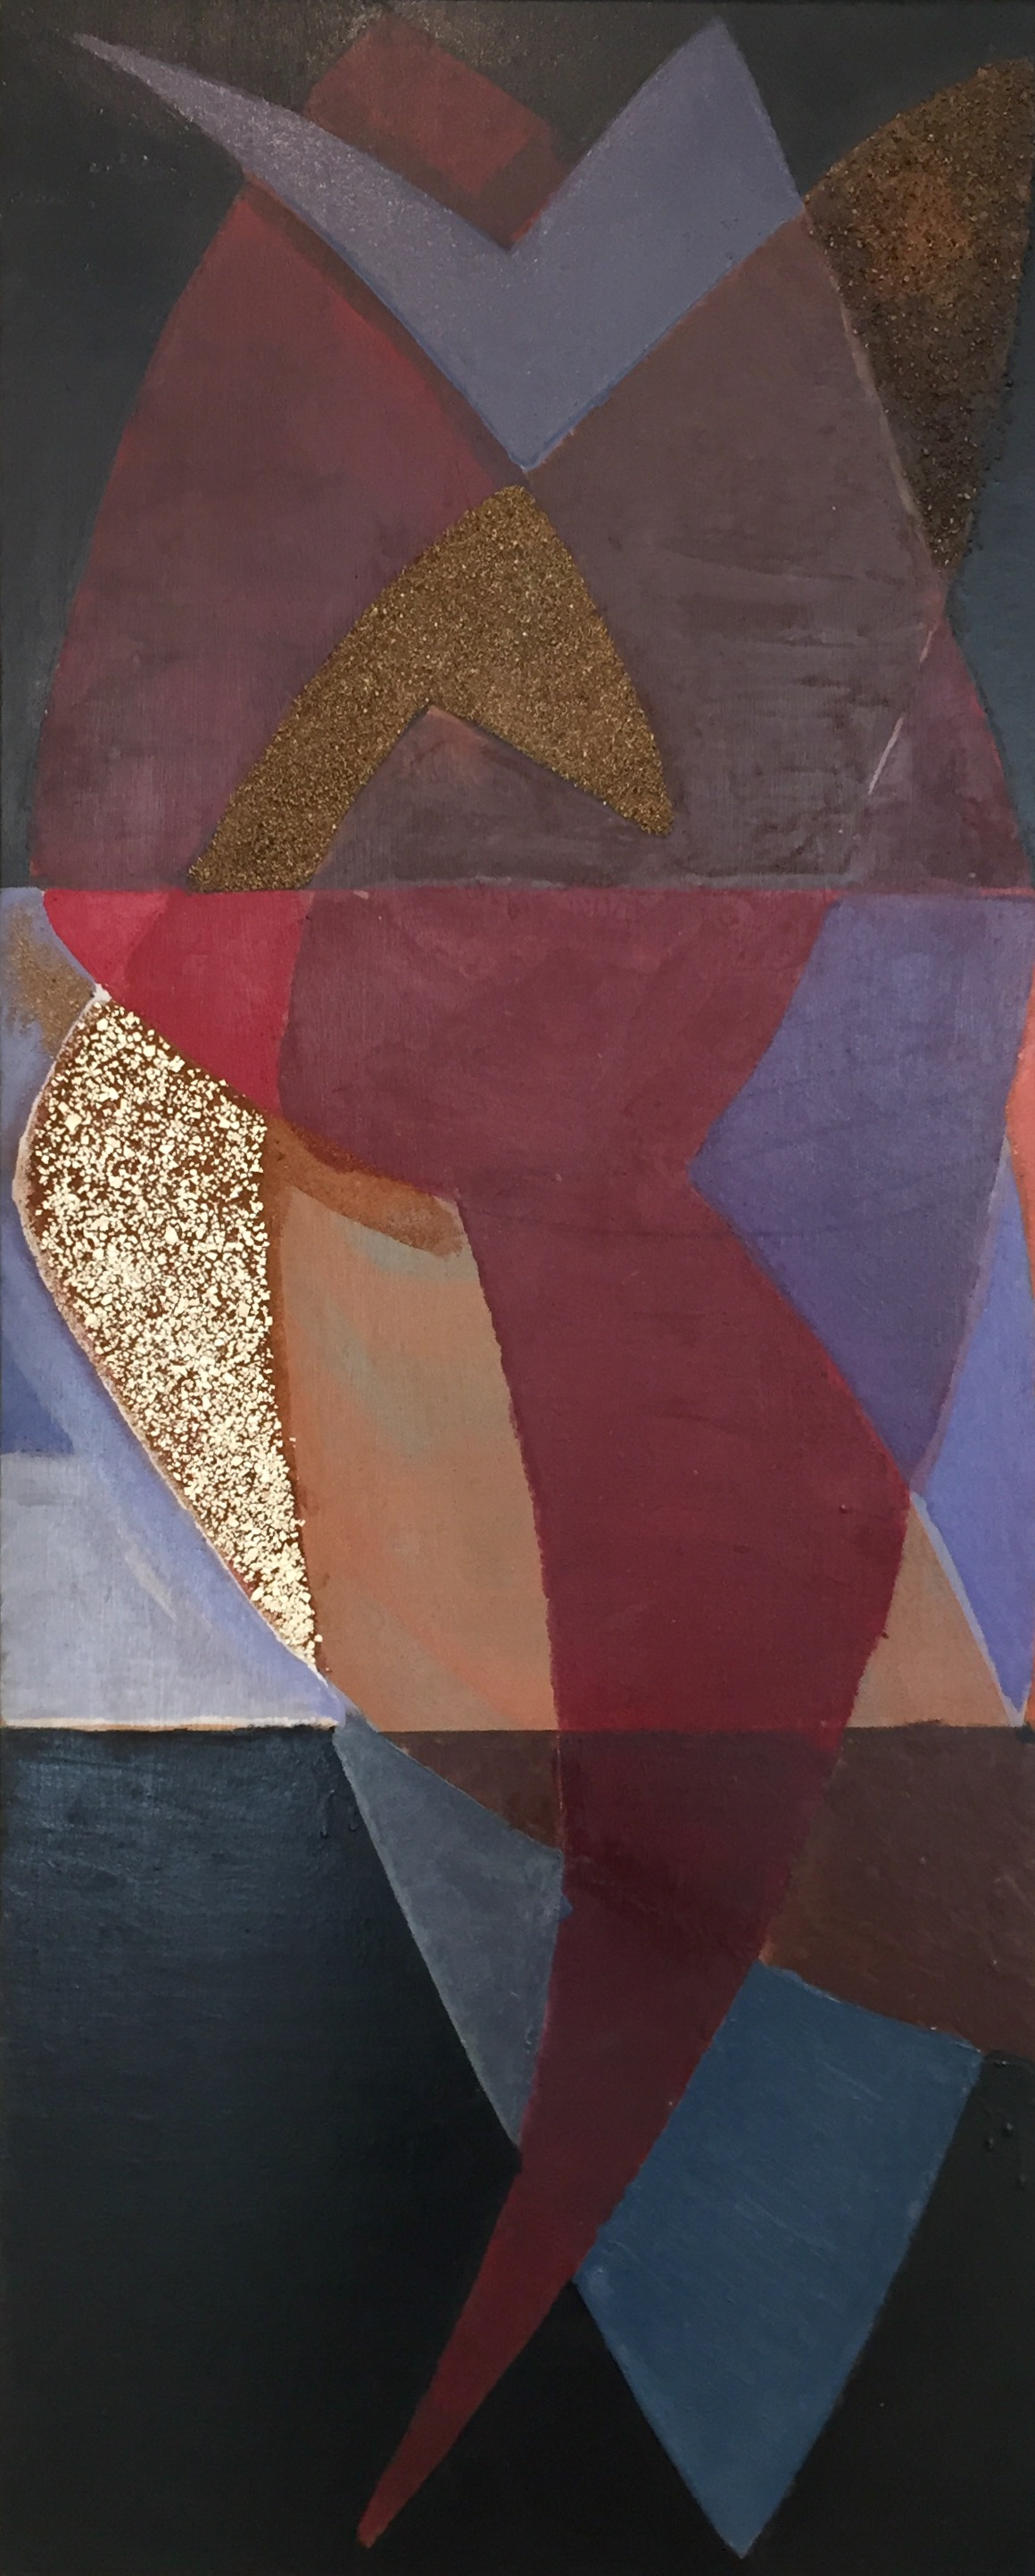 Alfred Reth | Composition | 1950s | Oil, sand, stone on wood | signed | 122 x 50 cm